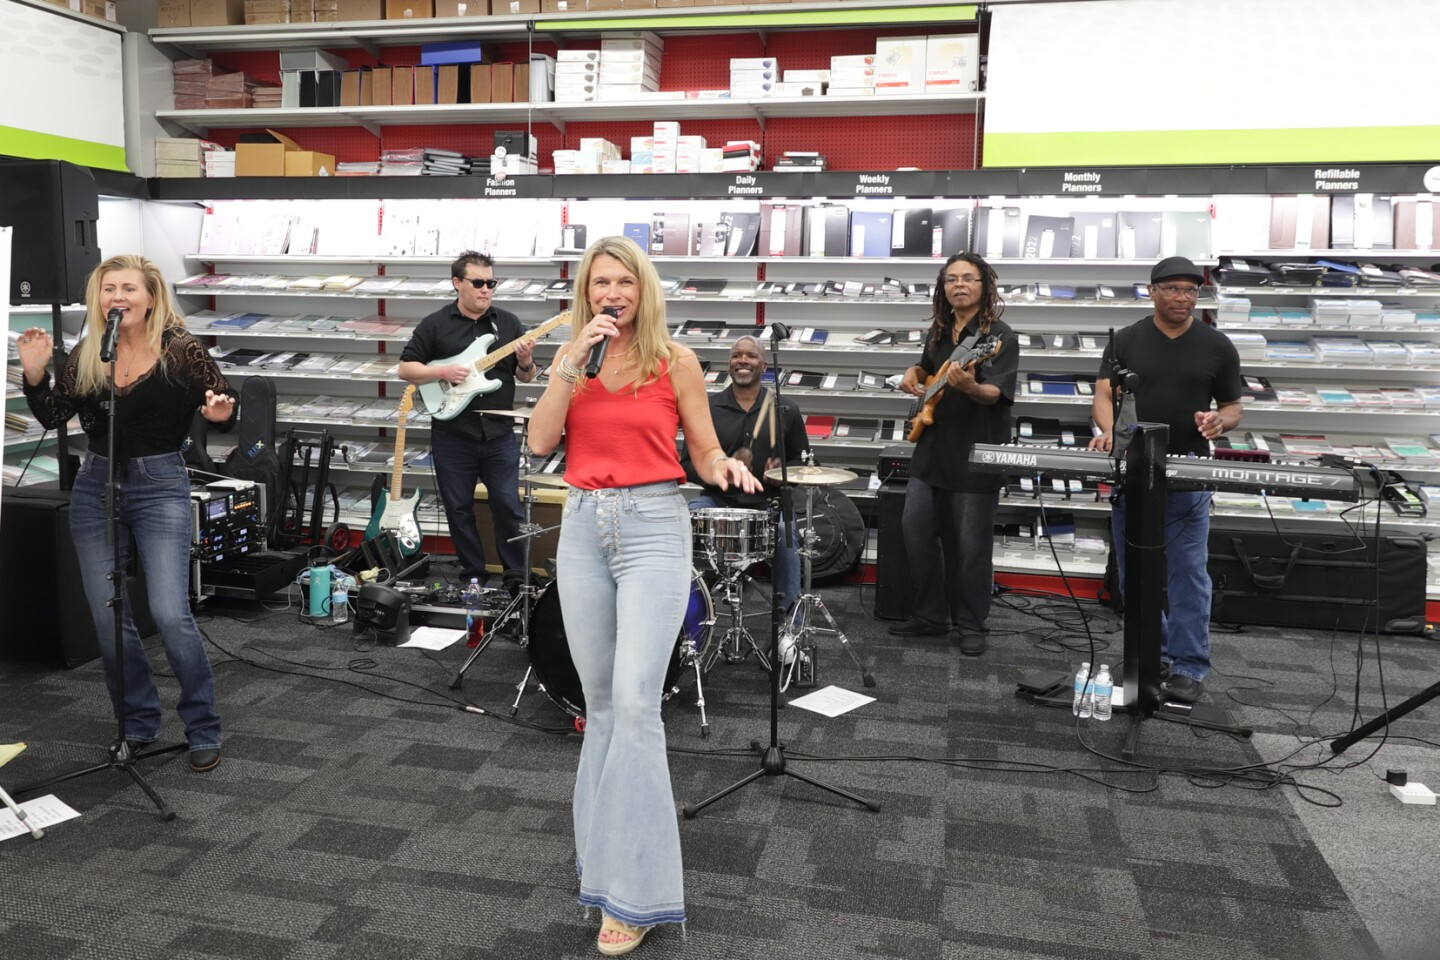 Local band April and the Funk Junkies